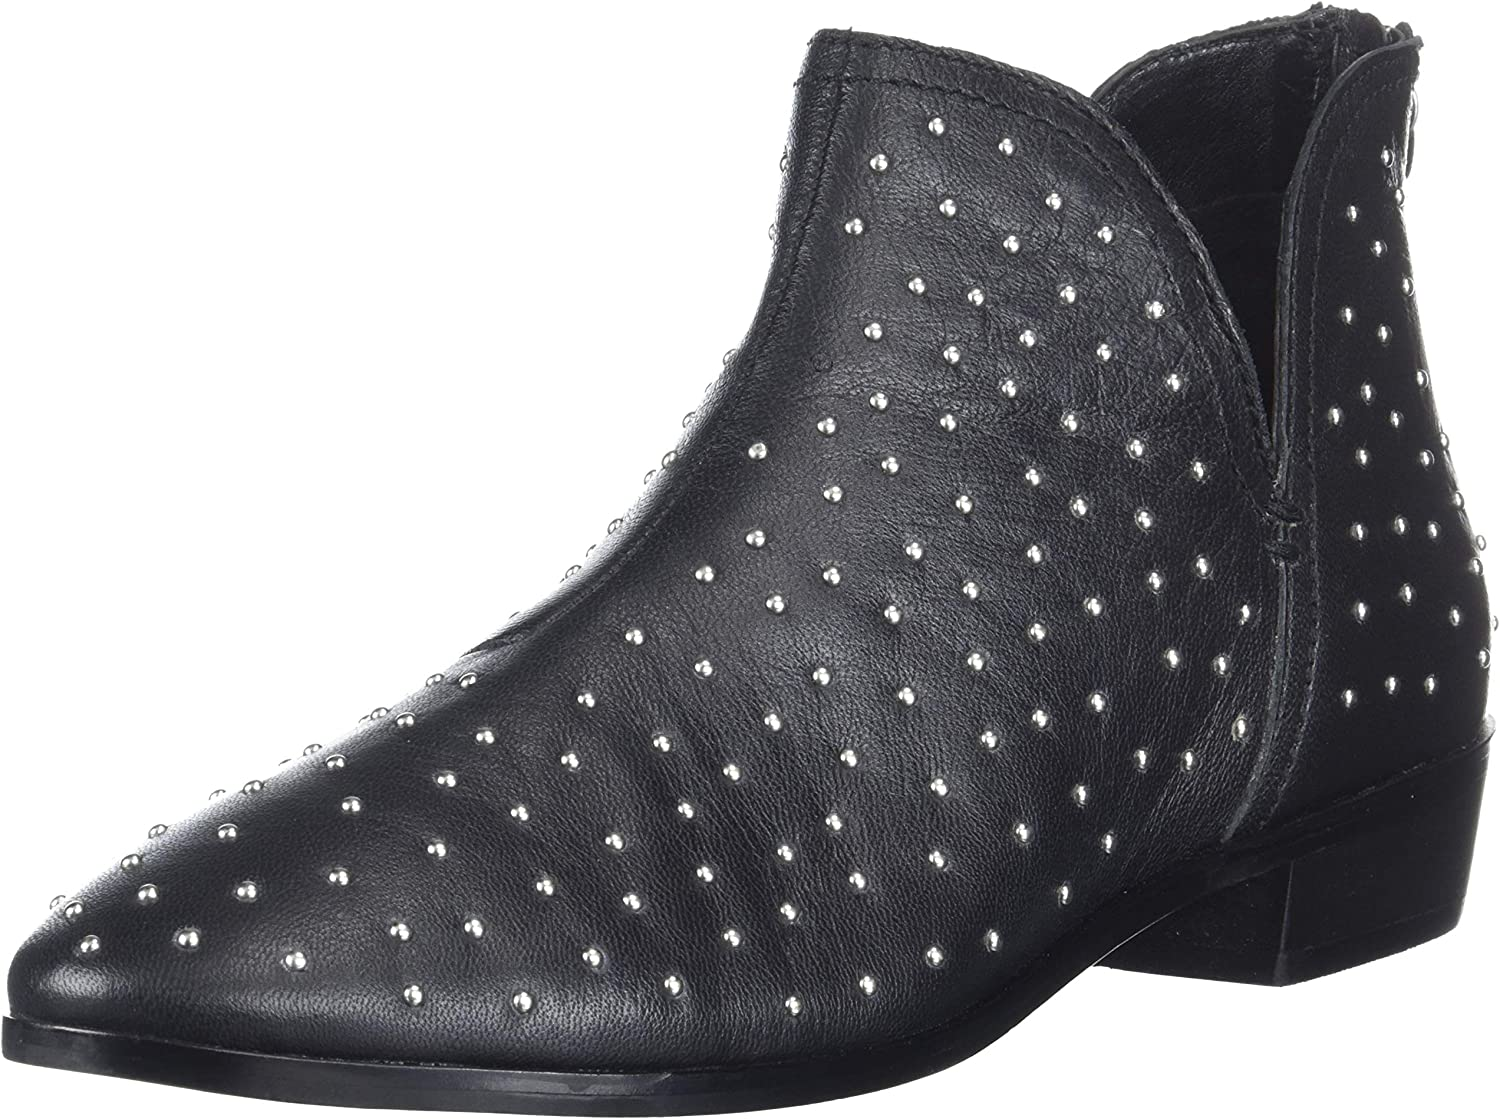 Kenneth Cole REACTION Womens Loop There It is Flat Ankle Bootie Ankle Boot